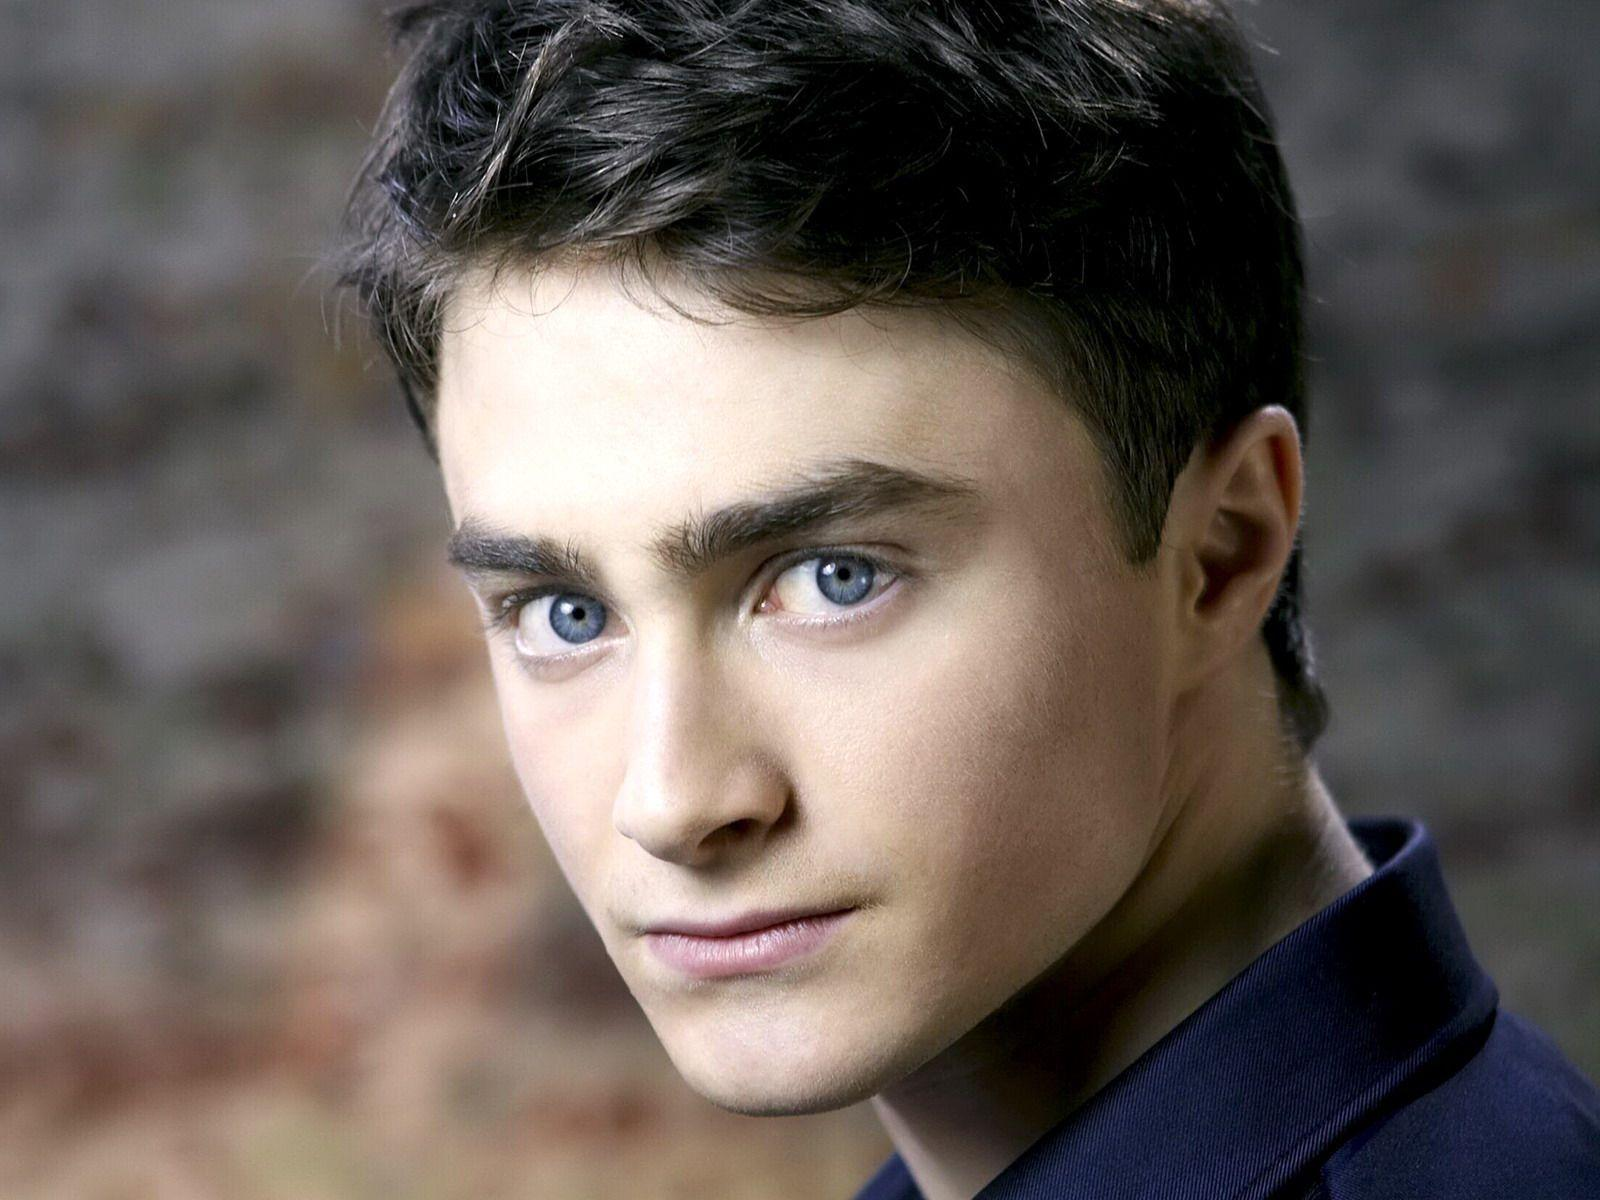 Image result for Daniel radcliffe gay face